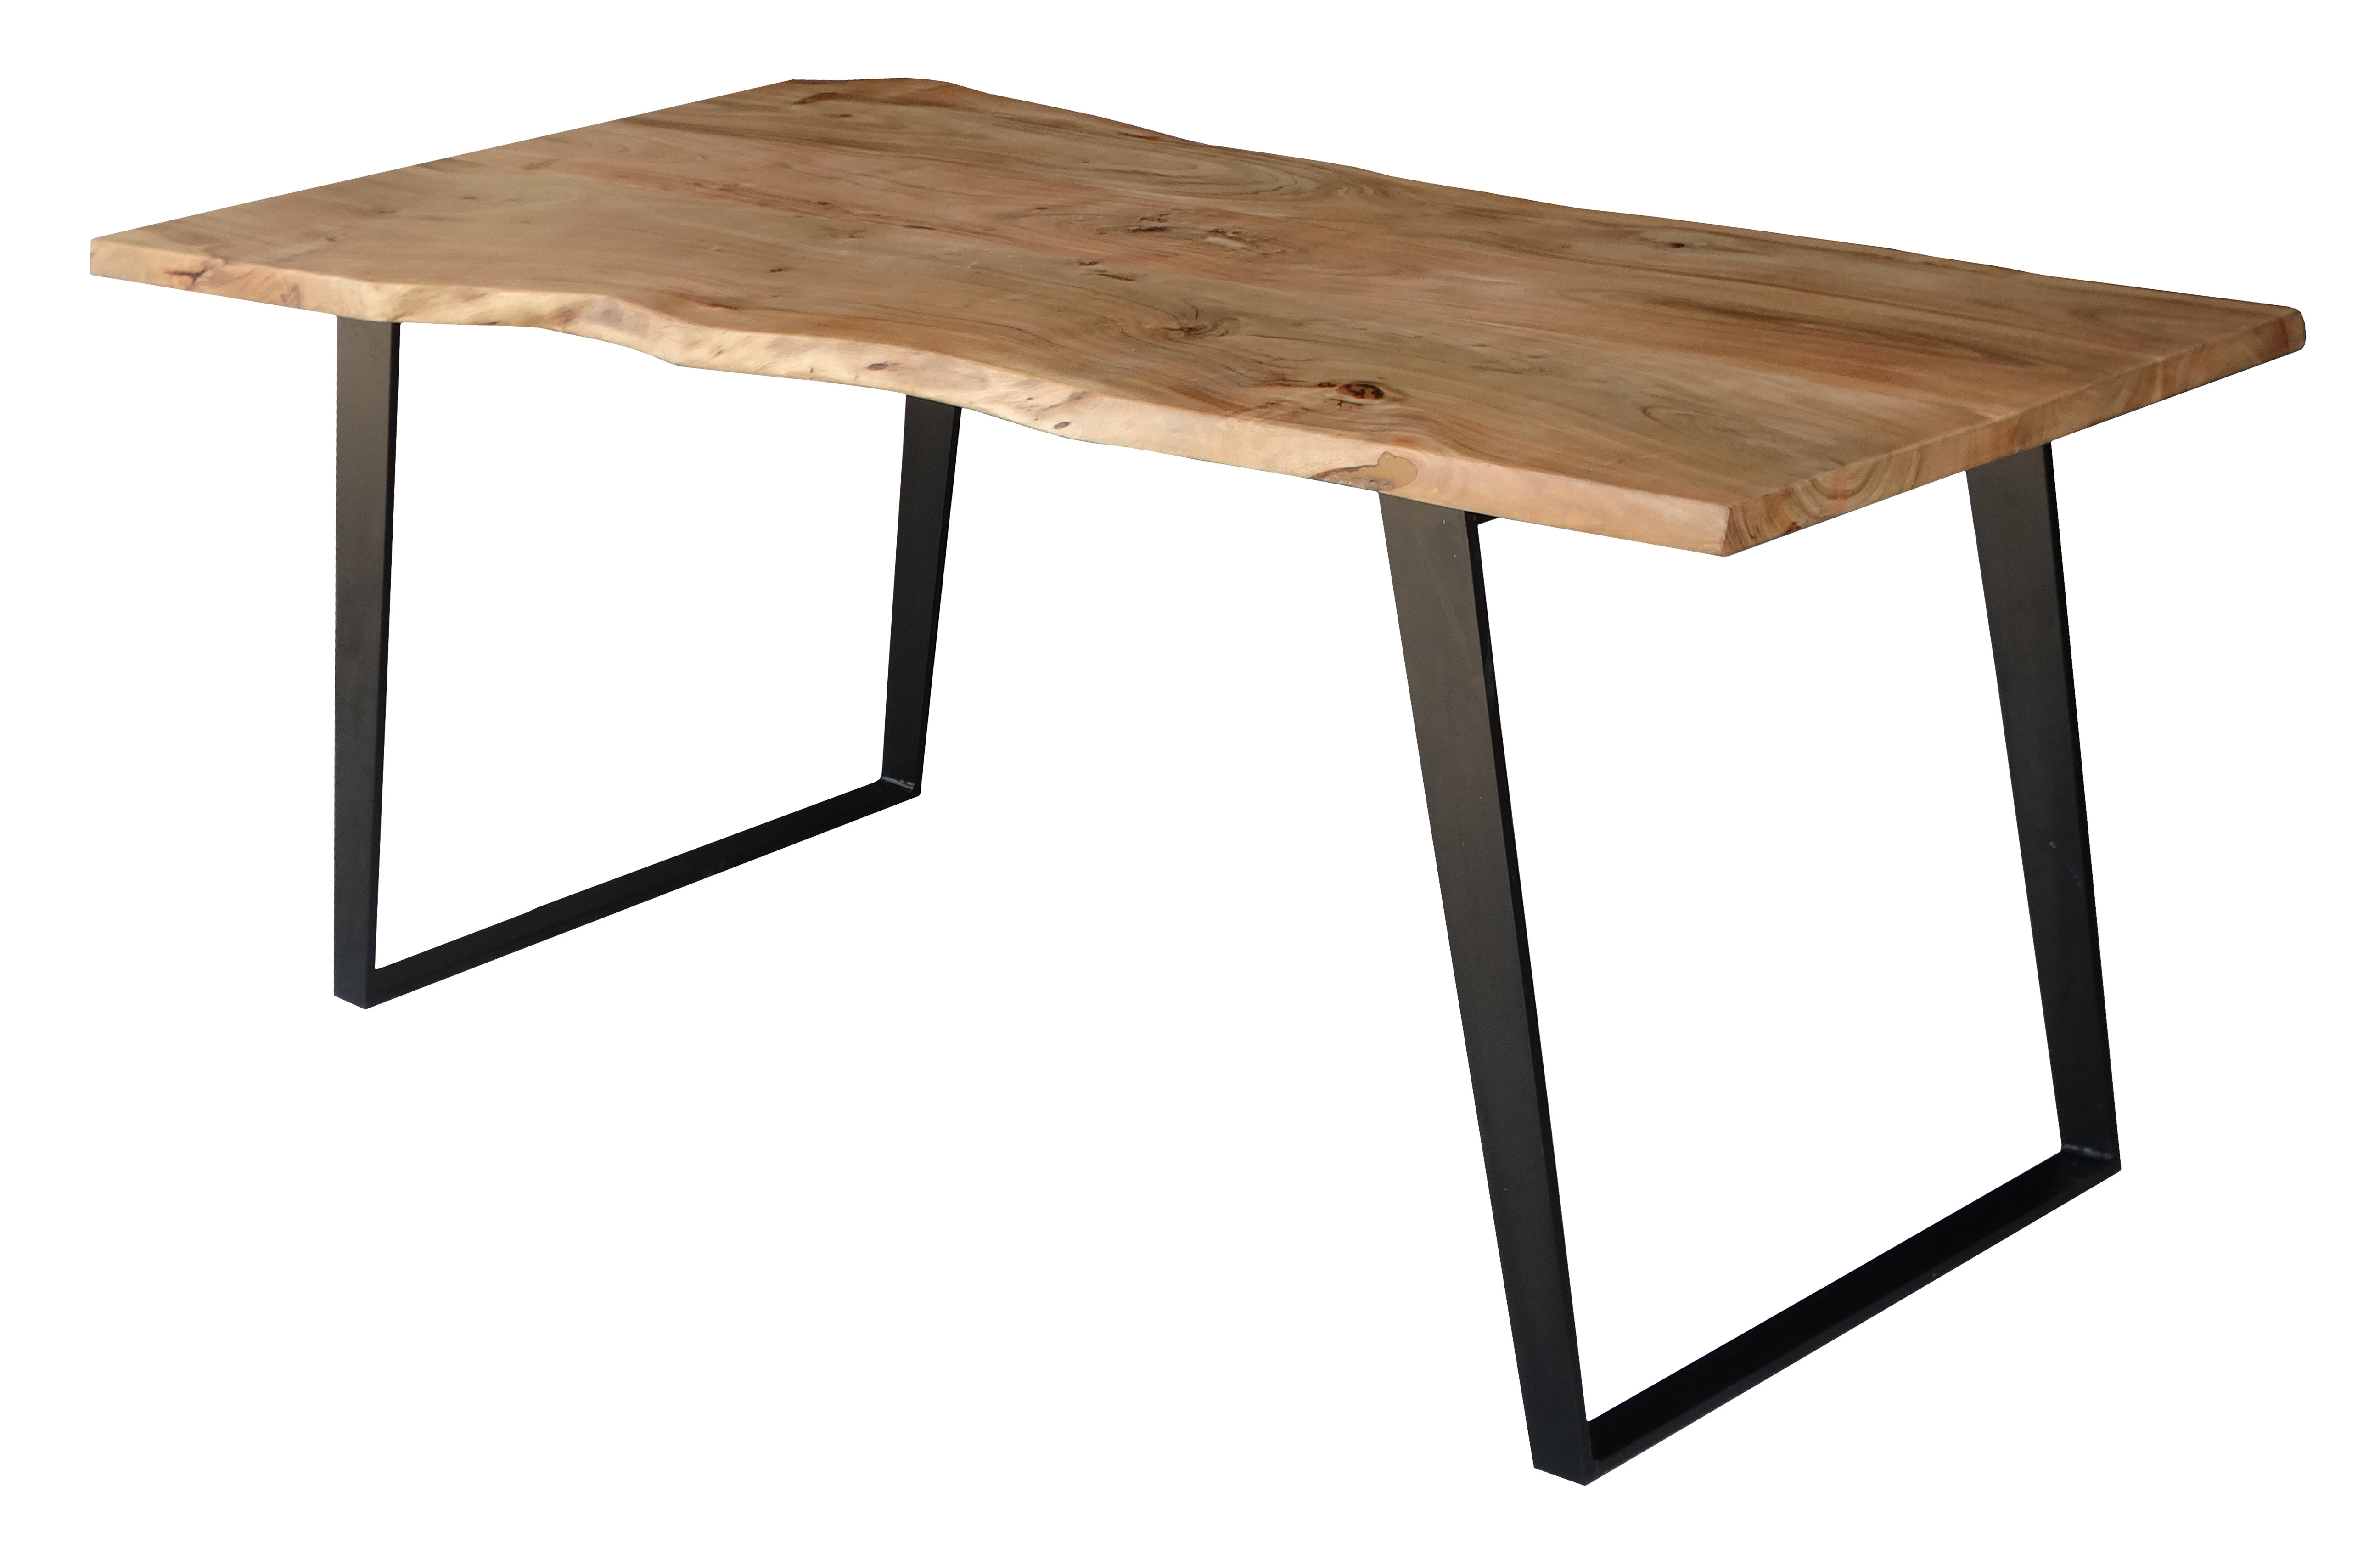 Emmeline 5 Piece Breakfast Nook Dining Sets Pertaining To Most Popular Emmeline Solid Wood Live Edge Dining Table (View 6 of 20)